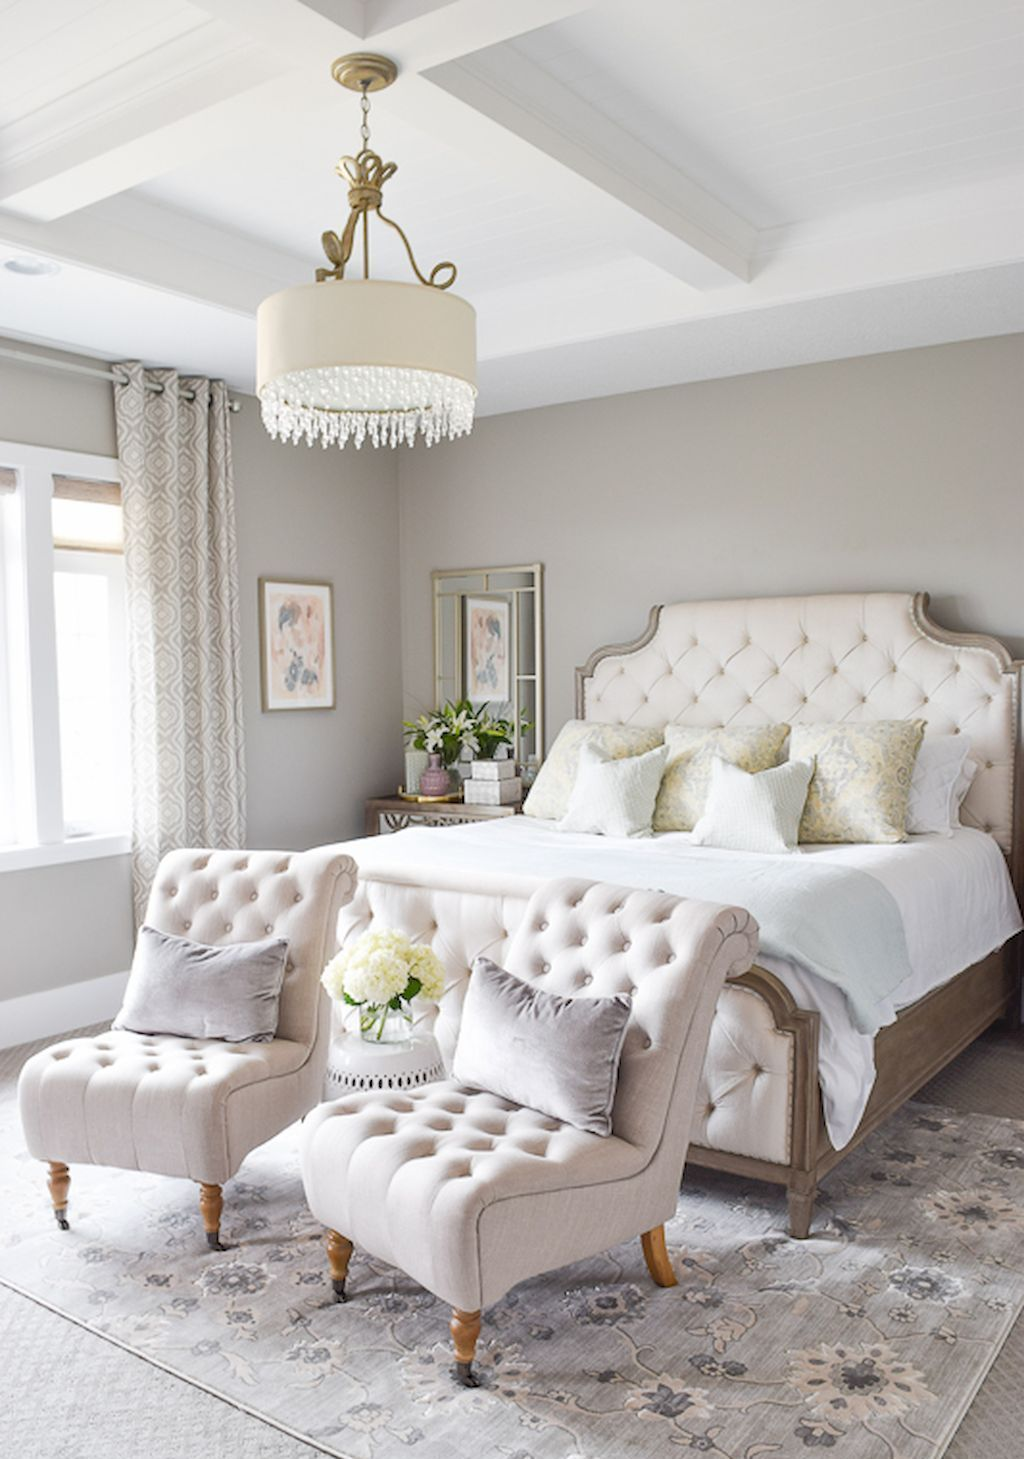 Gorgeous 50 Master Bedroom Design and Decor